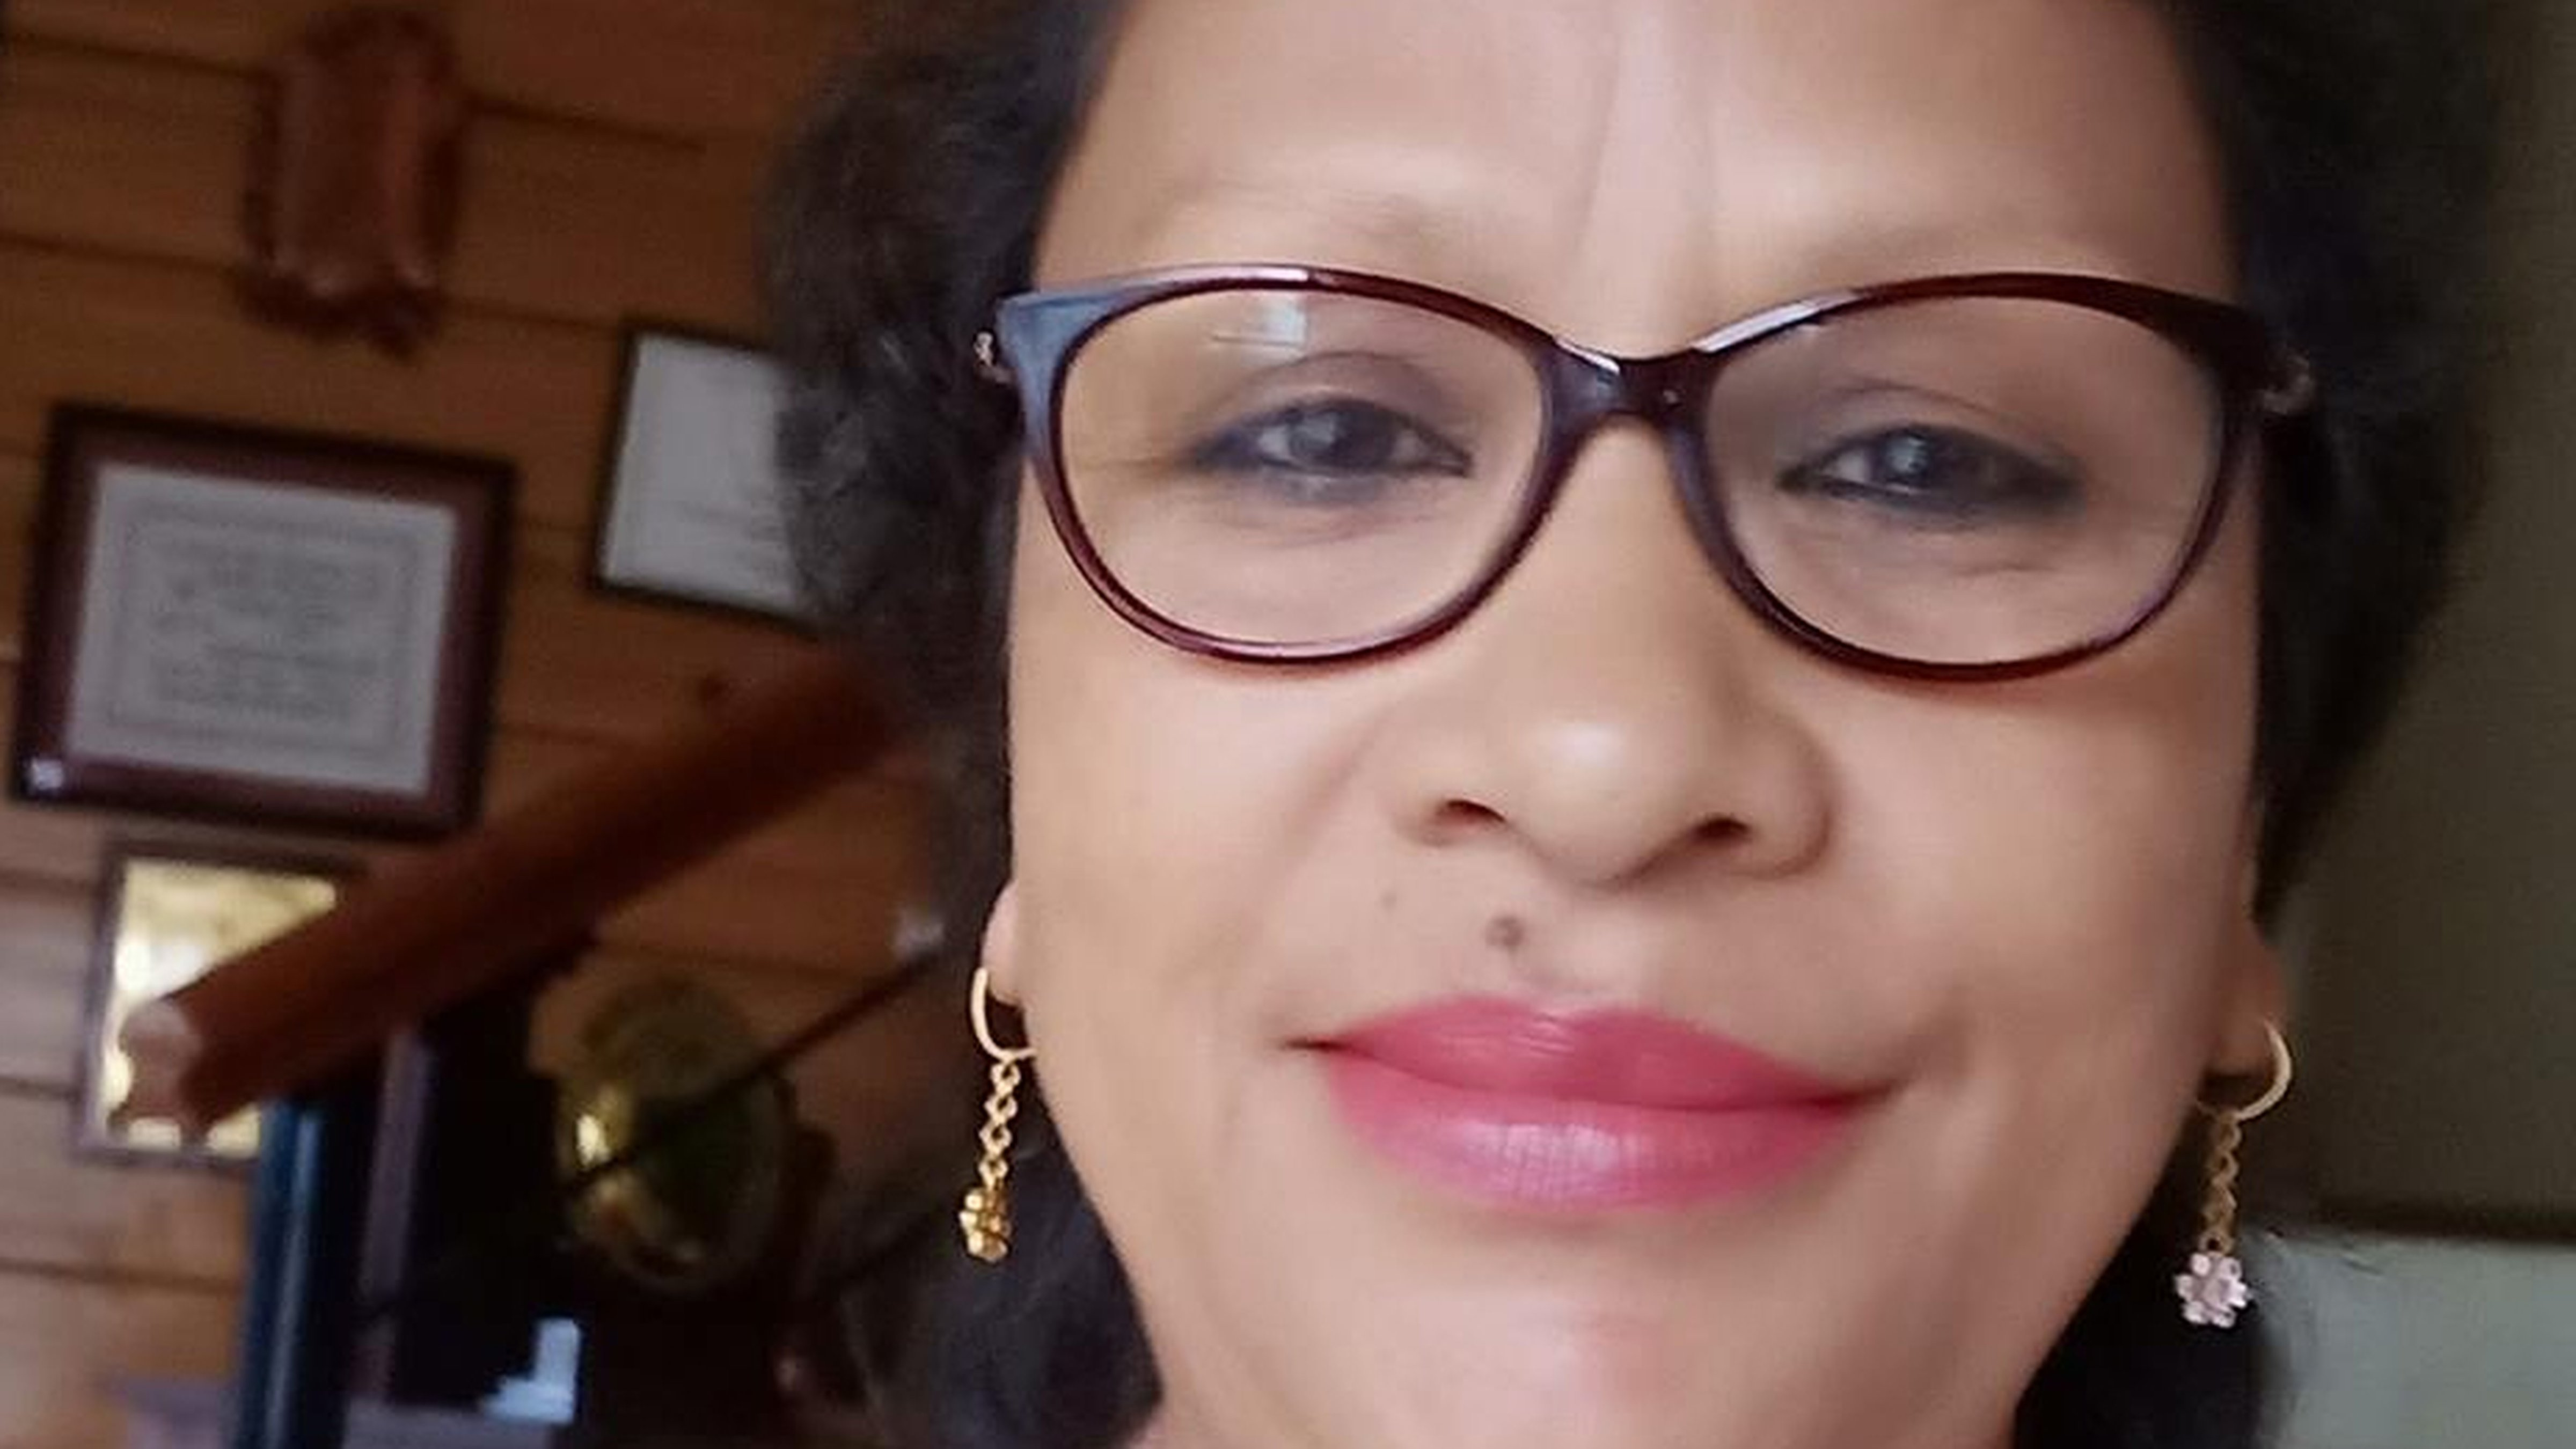 The Supreme Court has stayed the conviction and contempt proceedings against the editor of the Shillong Times, Patricia Mukhim.